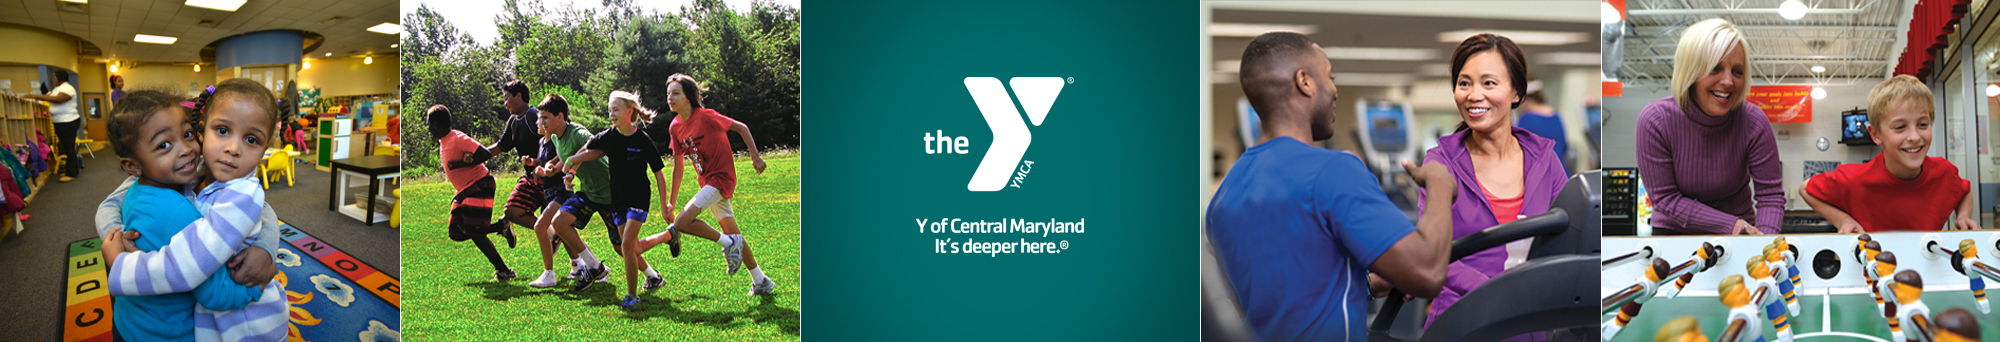 The Y in Central Maryland Blog